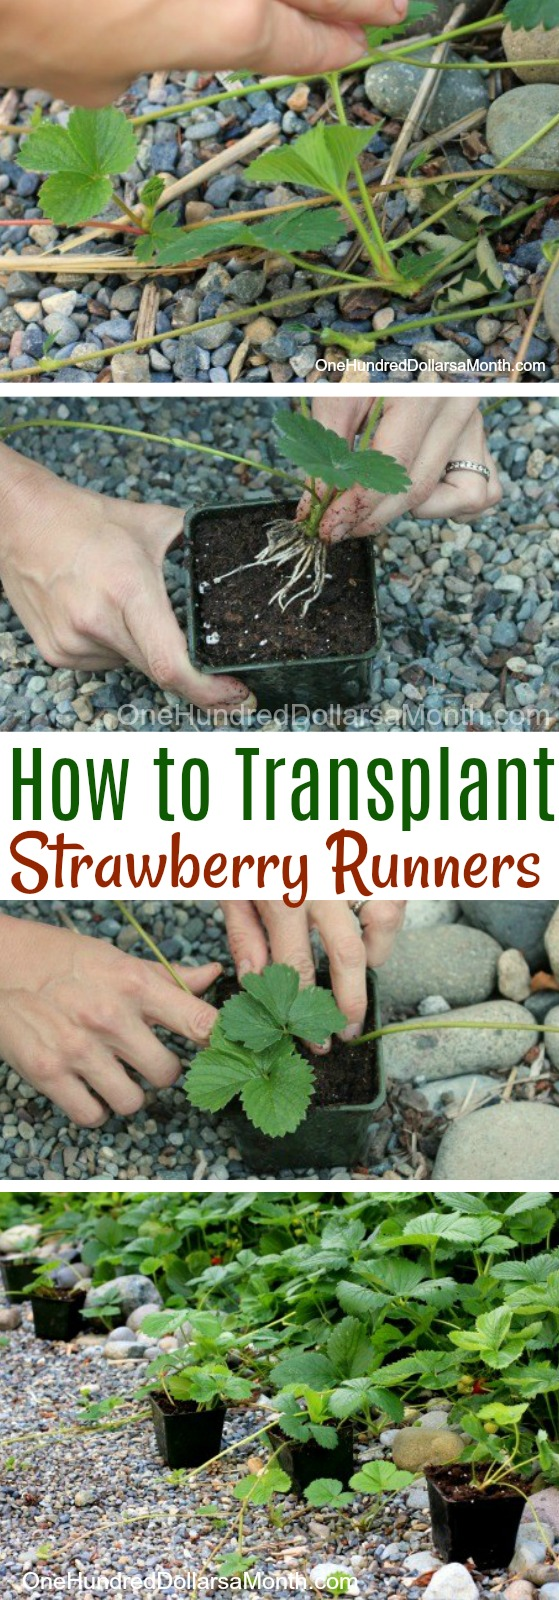 Transplanting Strawberry Runners